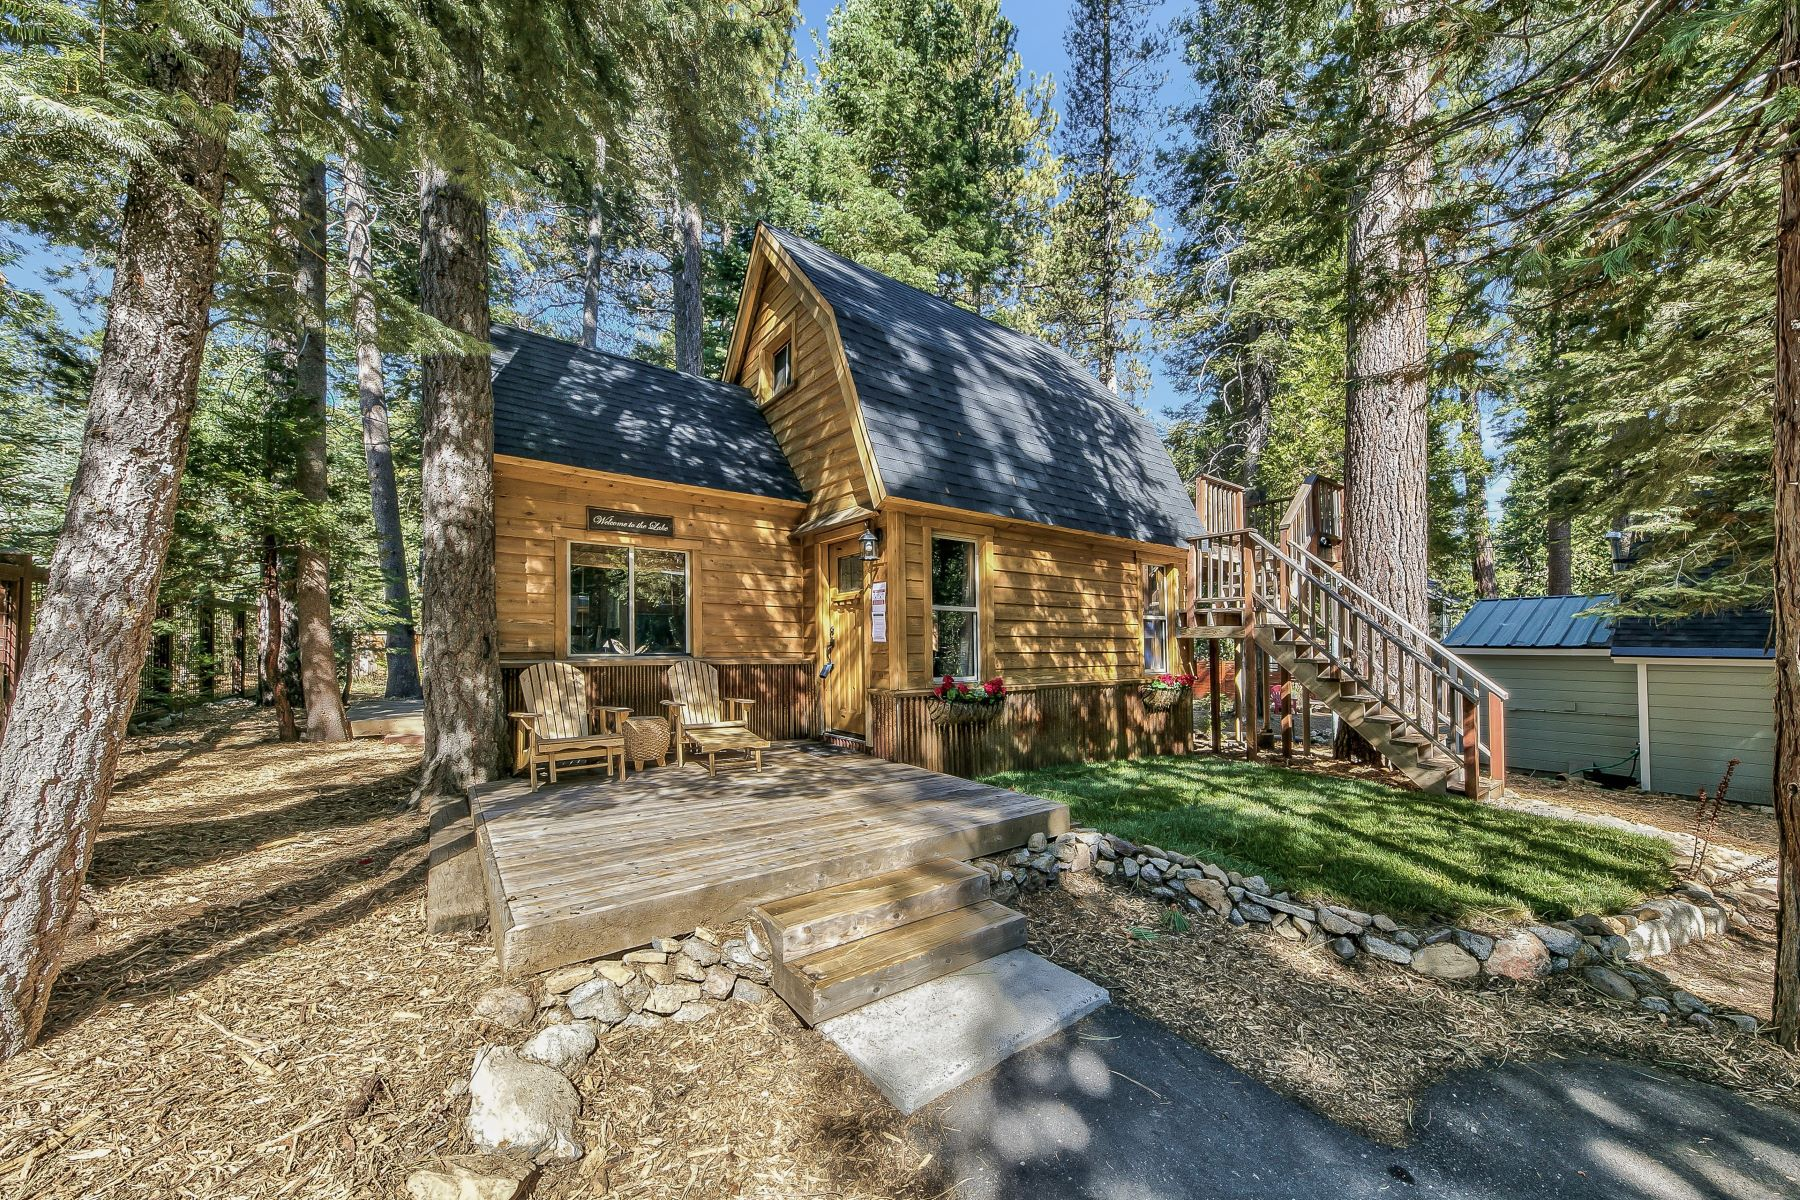 Single Family Homes for Active at Darling Old Tahoe Cabin 7246 6th Avenue Tahoma, California 96142 United States